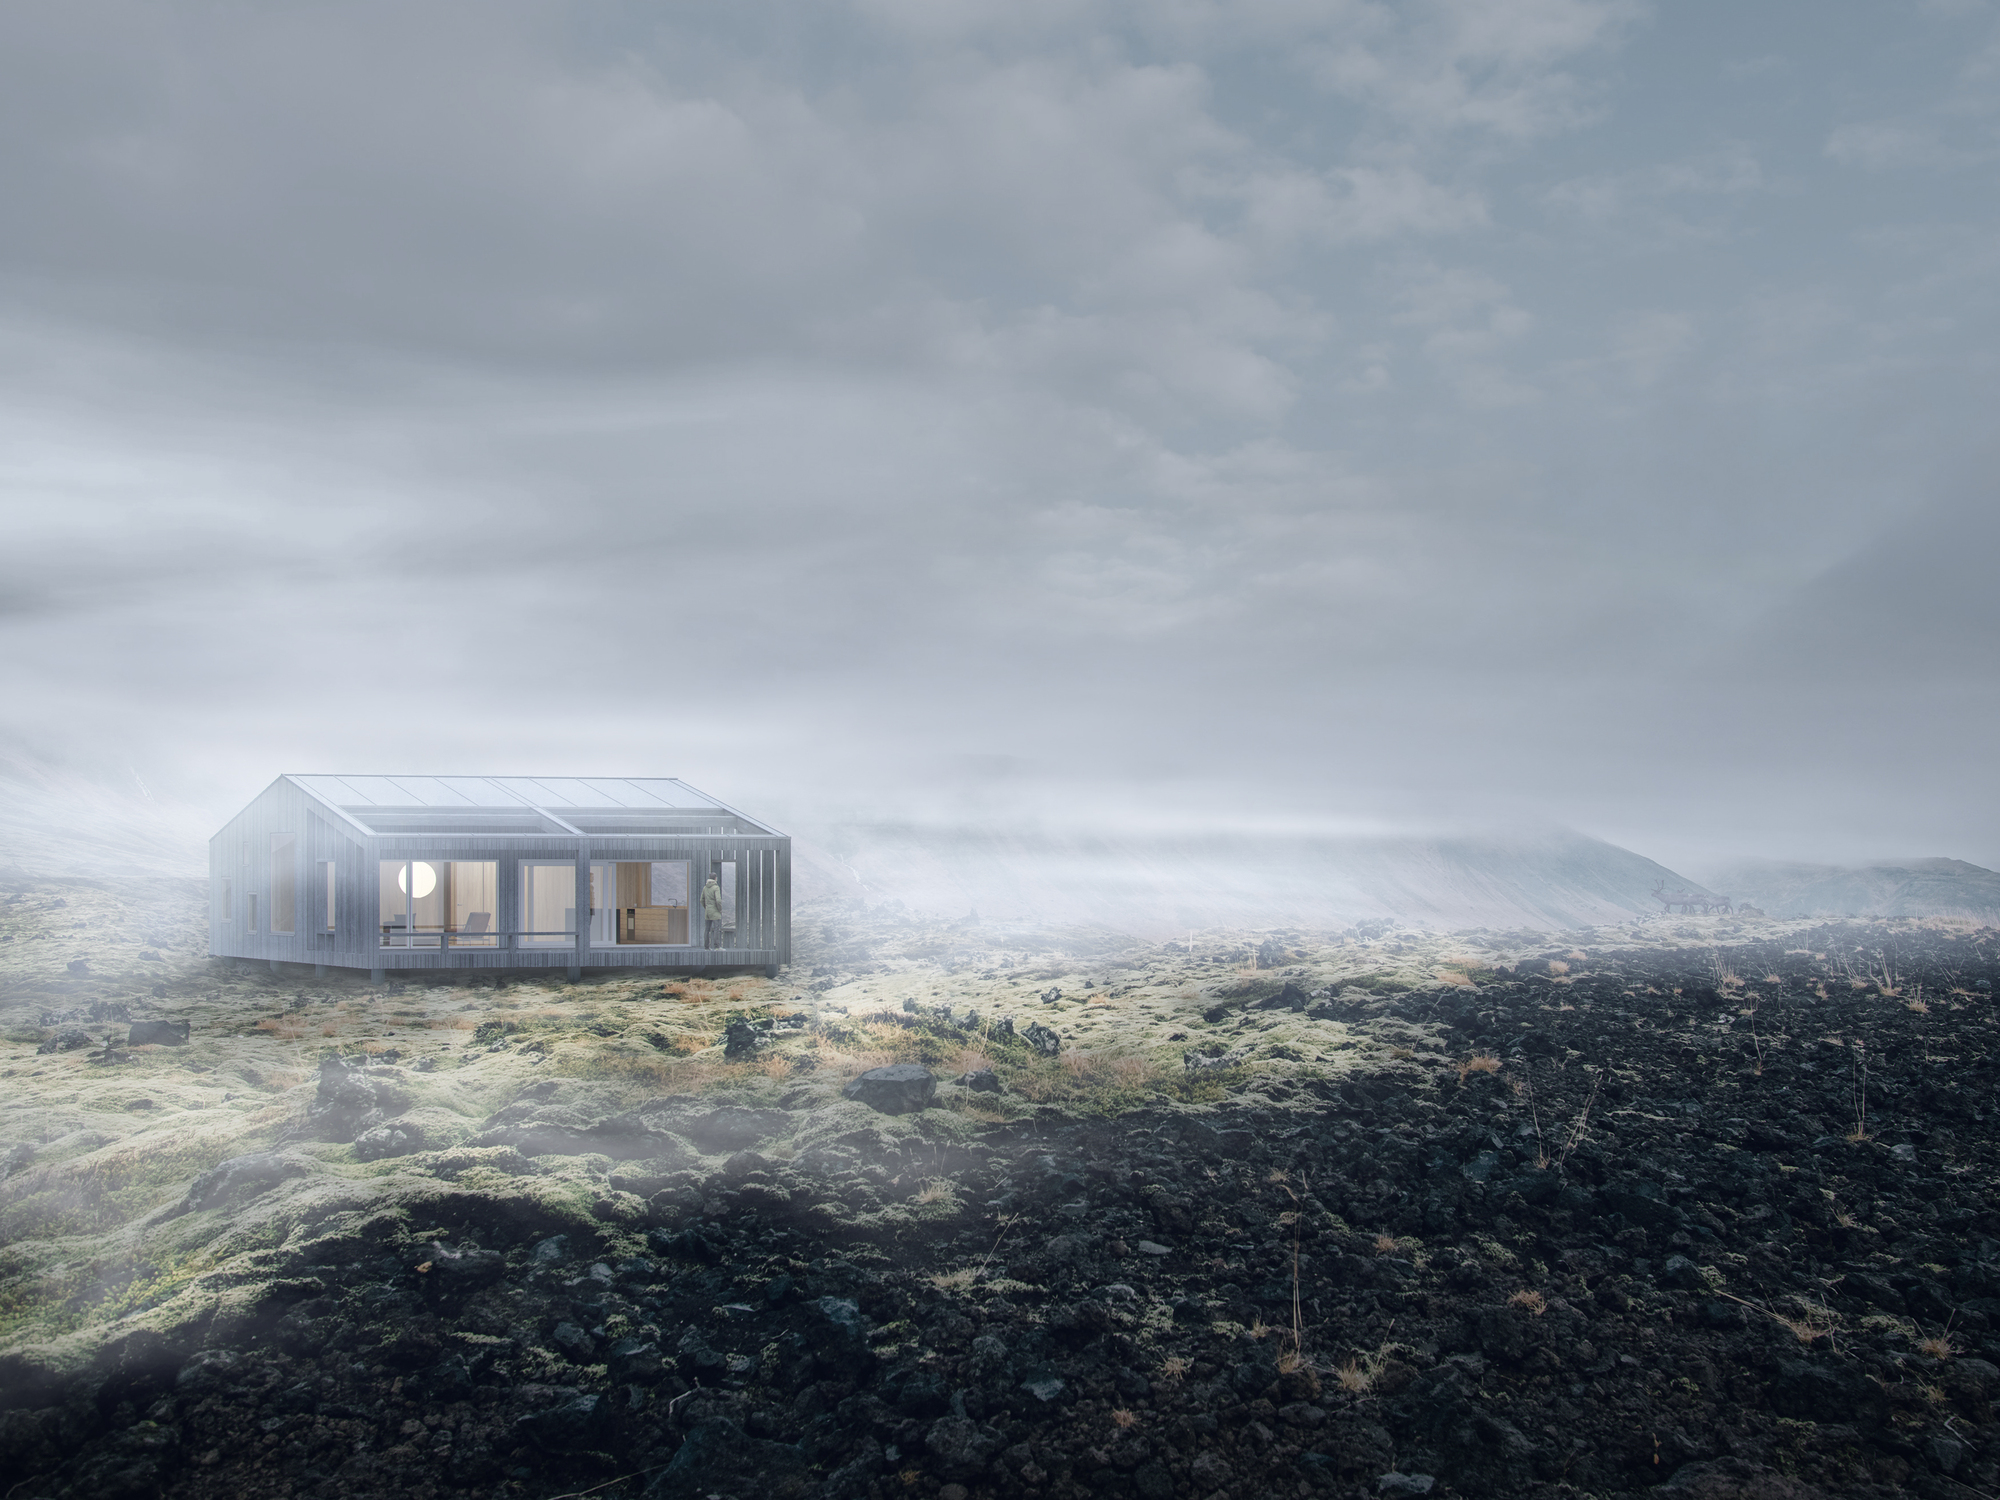 Gallery of Modular Housing Concepts by Danish Architects - 1